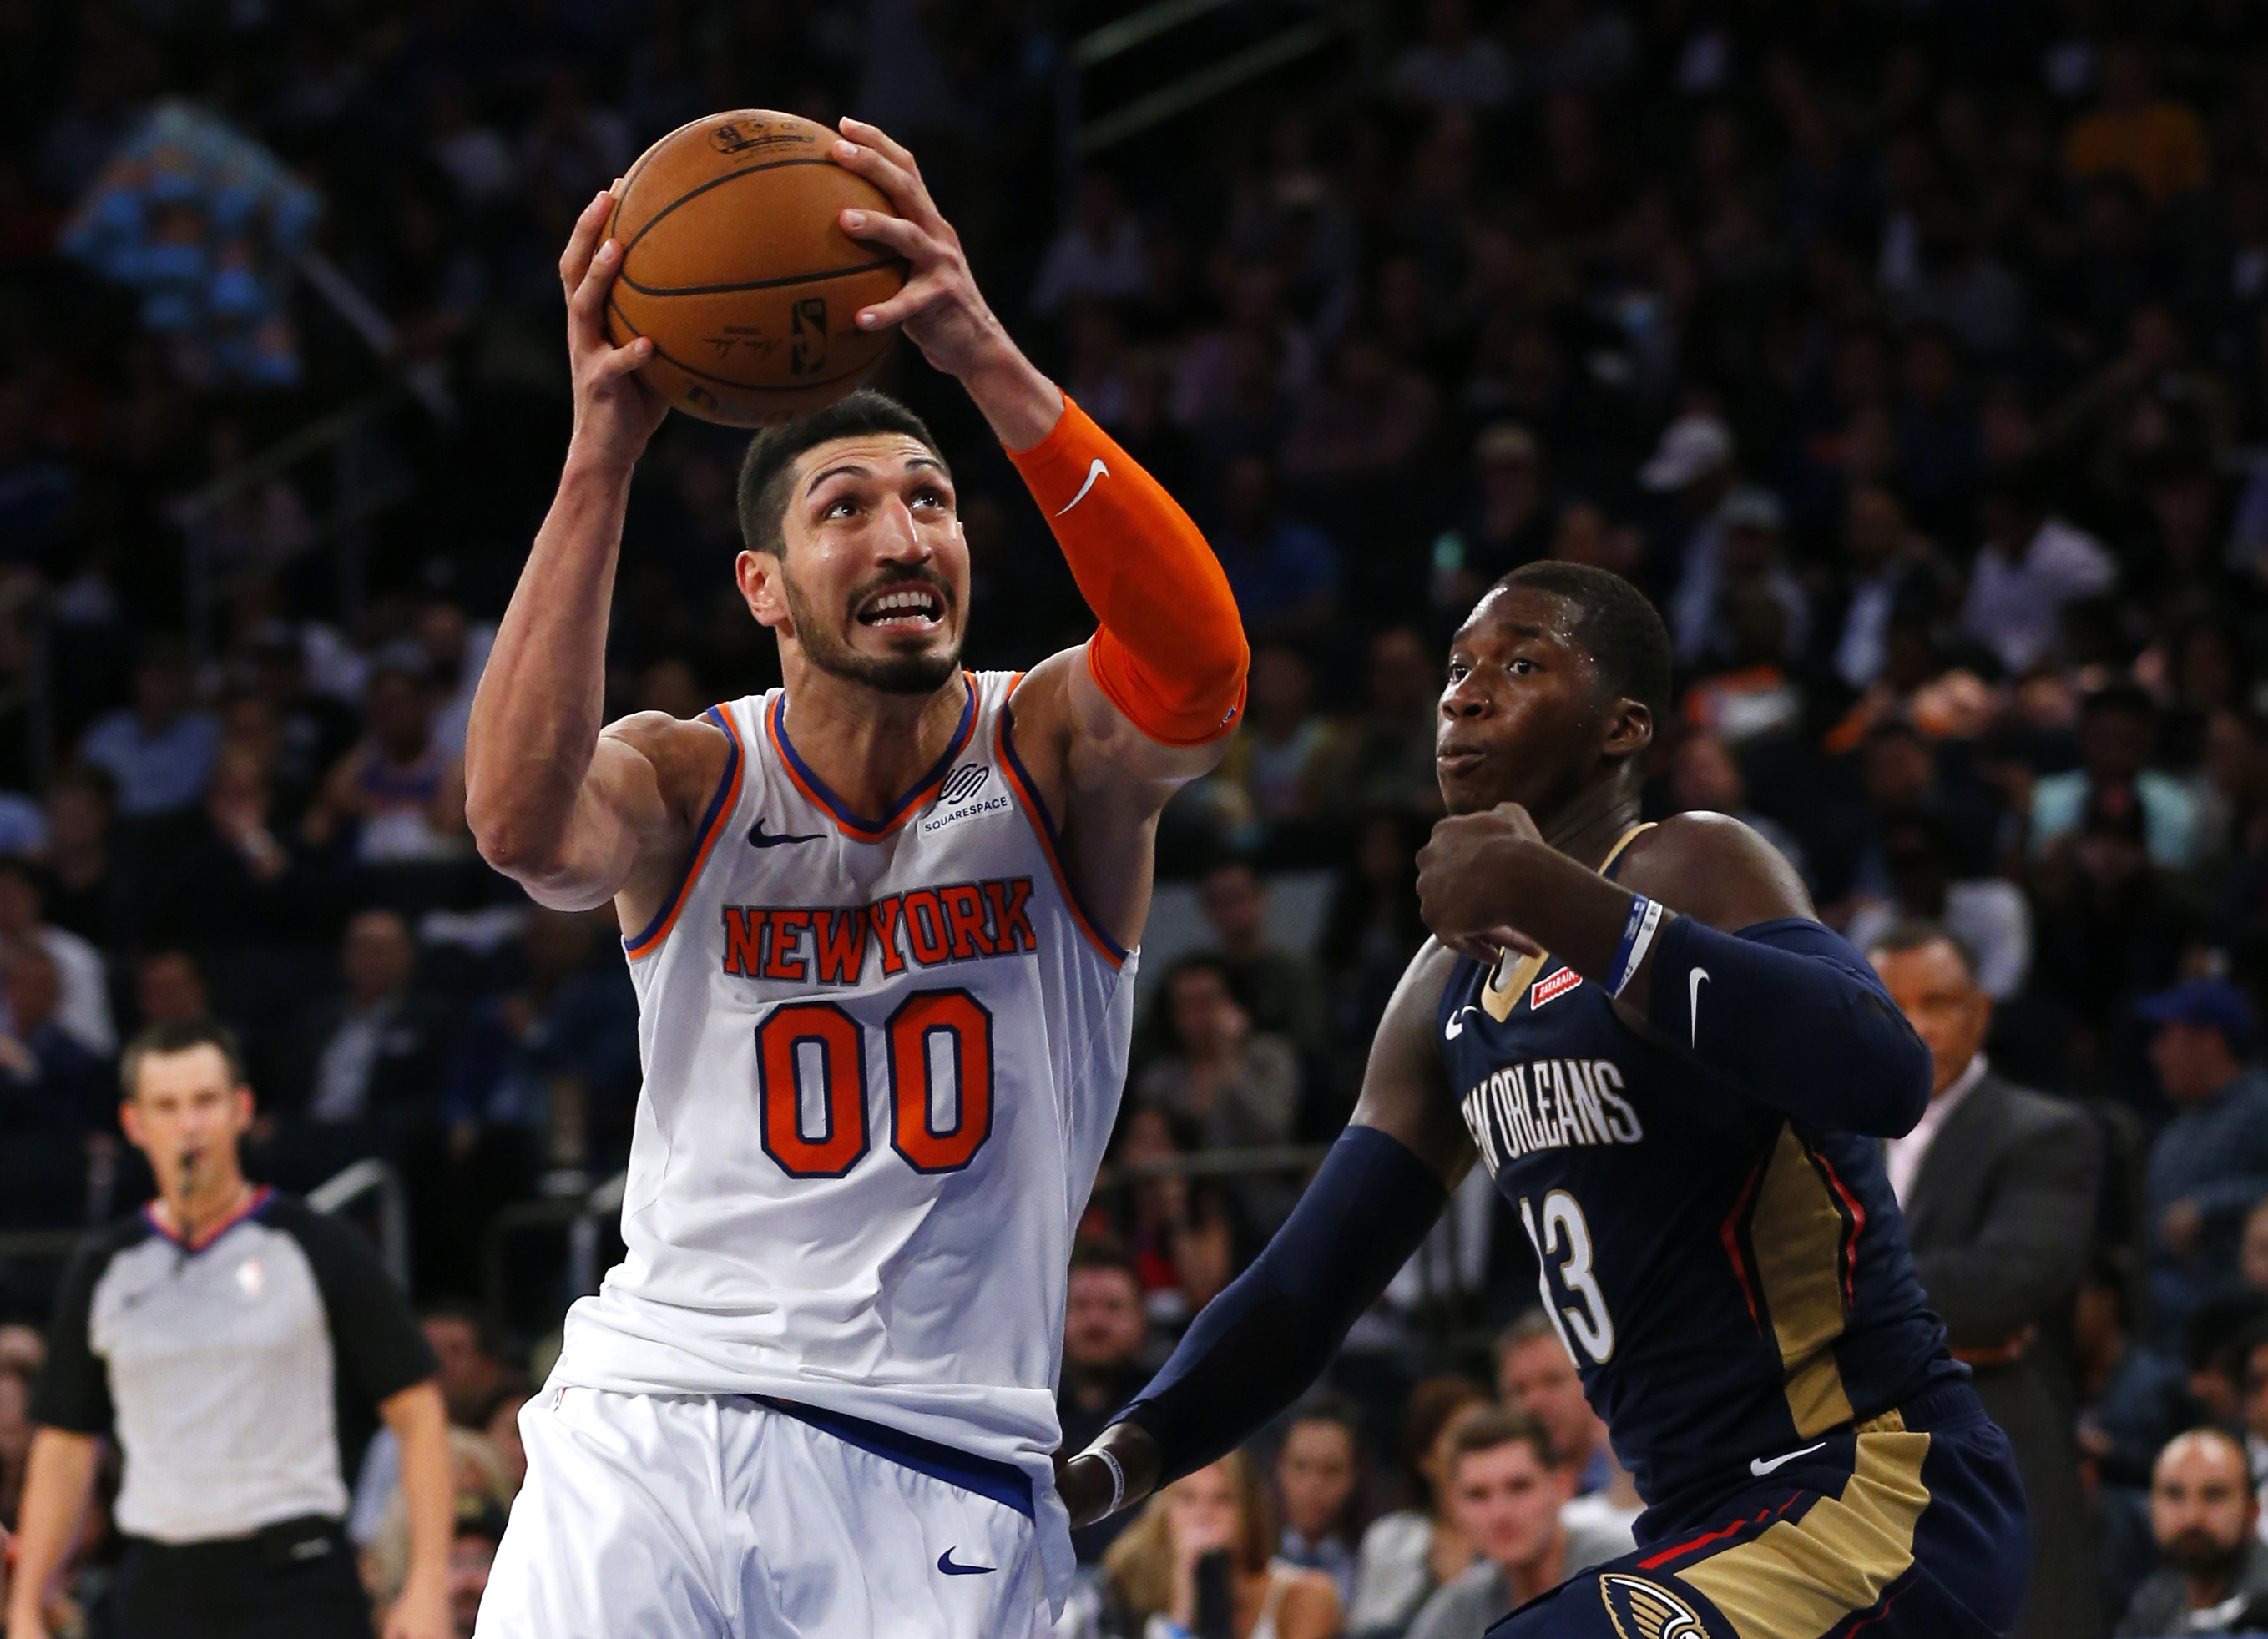 34b8bc3a1ea7 New Orleans Pelicans pantsed by New York Knickerbockers in sloppy 106-100  loss